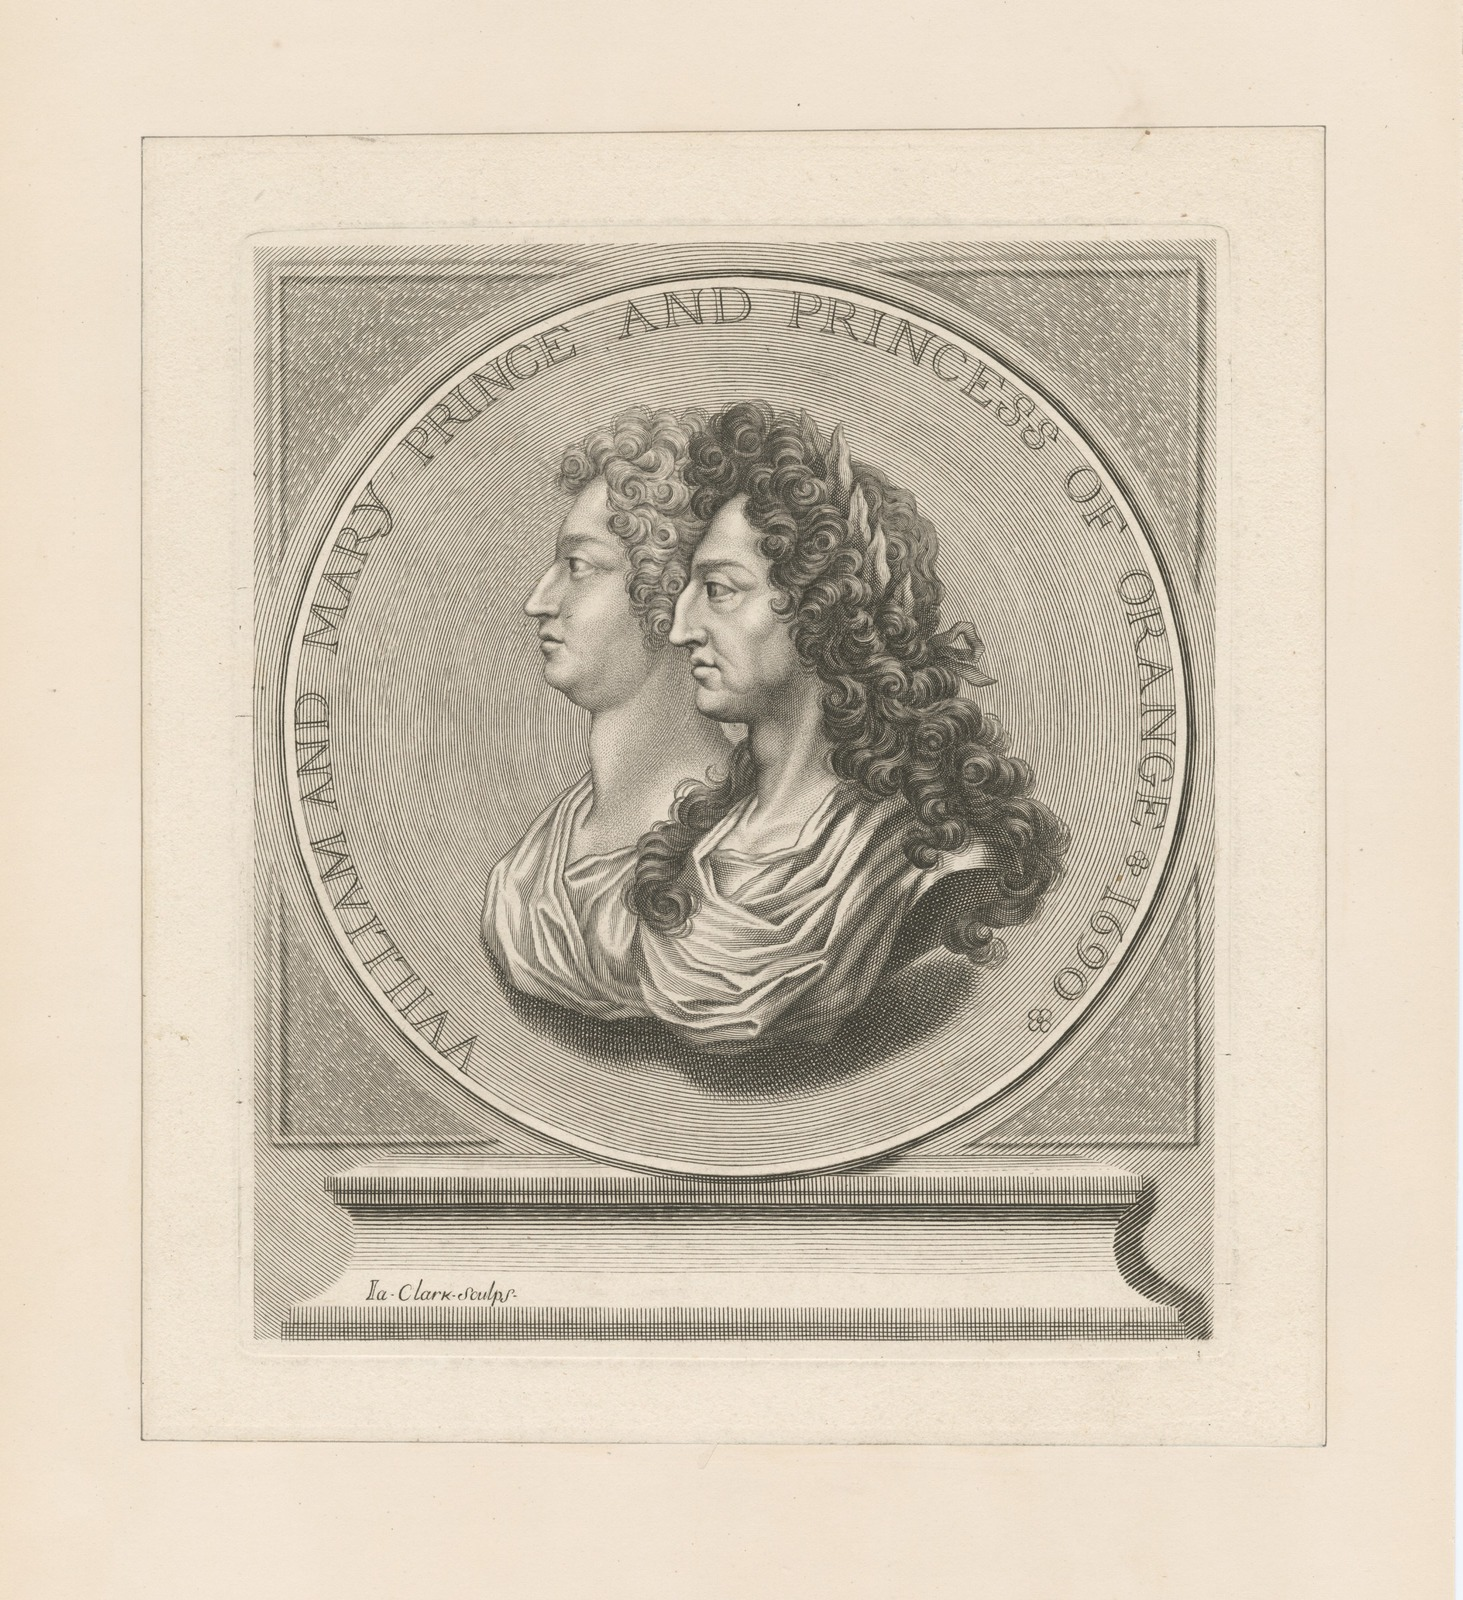 William and Mary Prince and Princess of Orange 1690